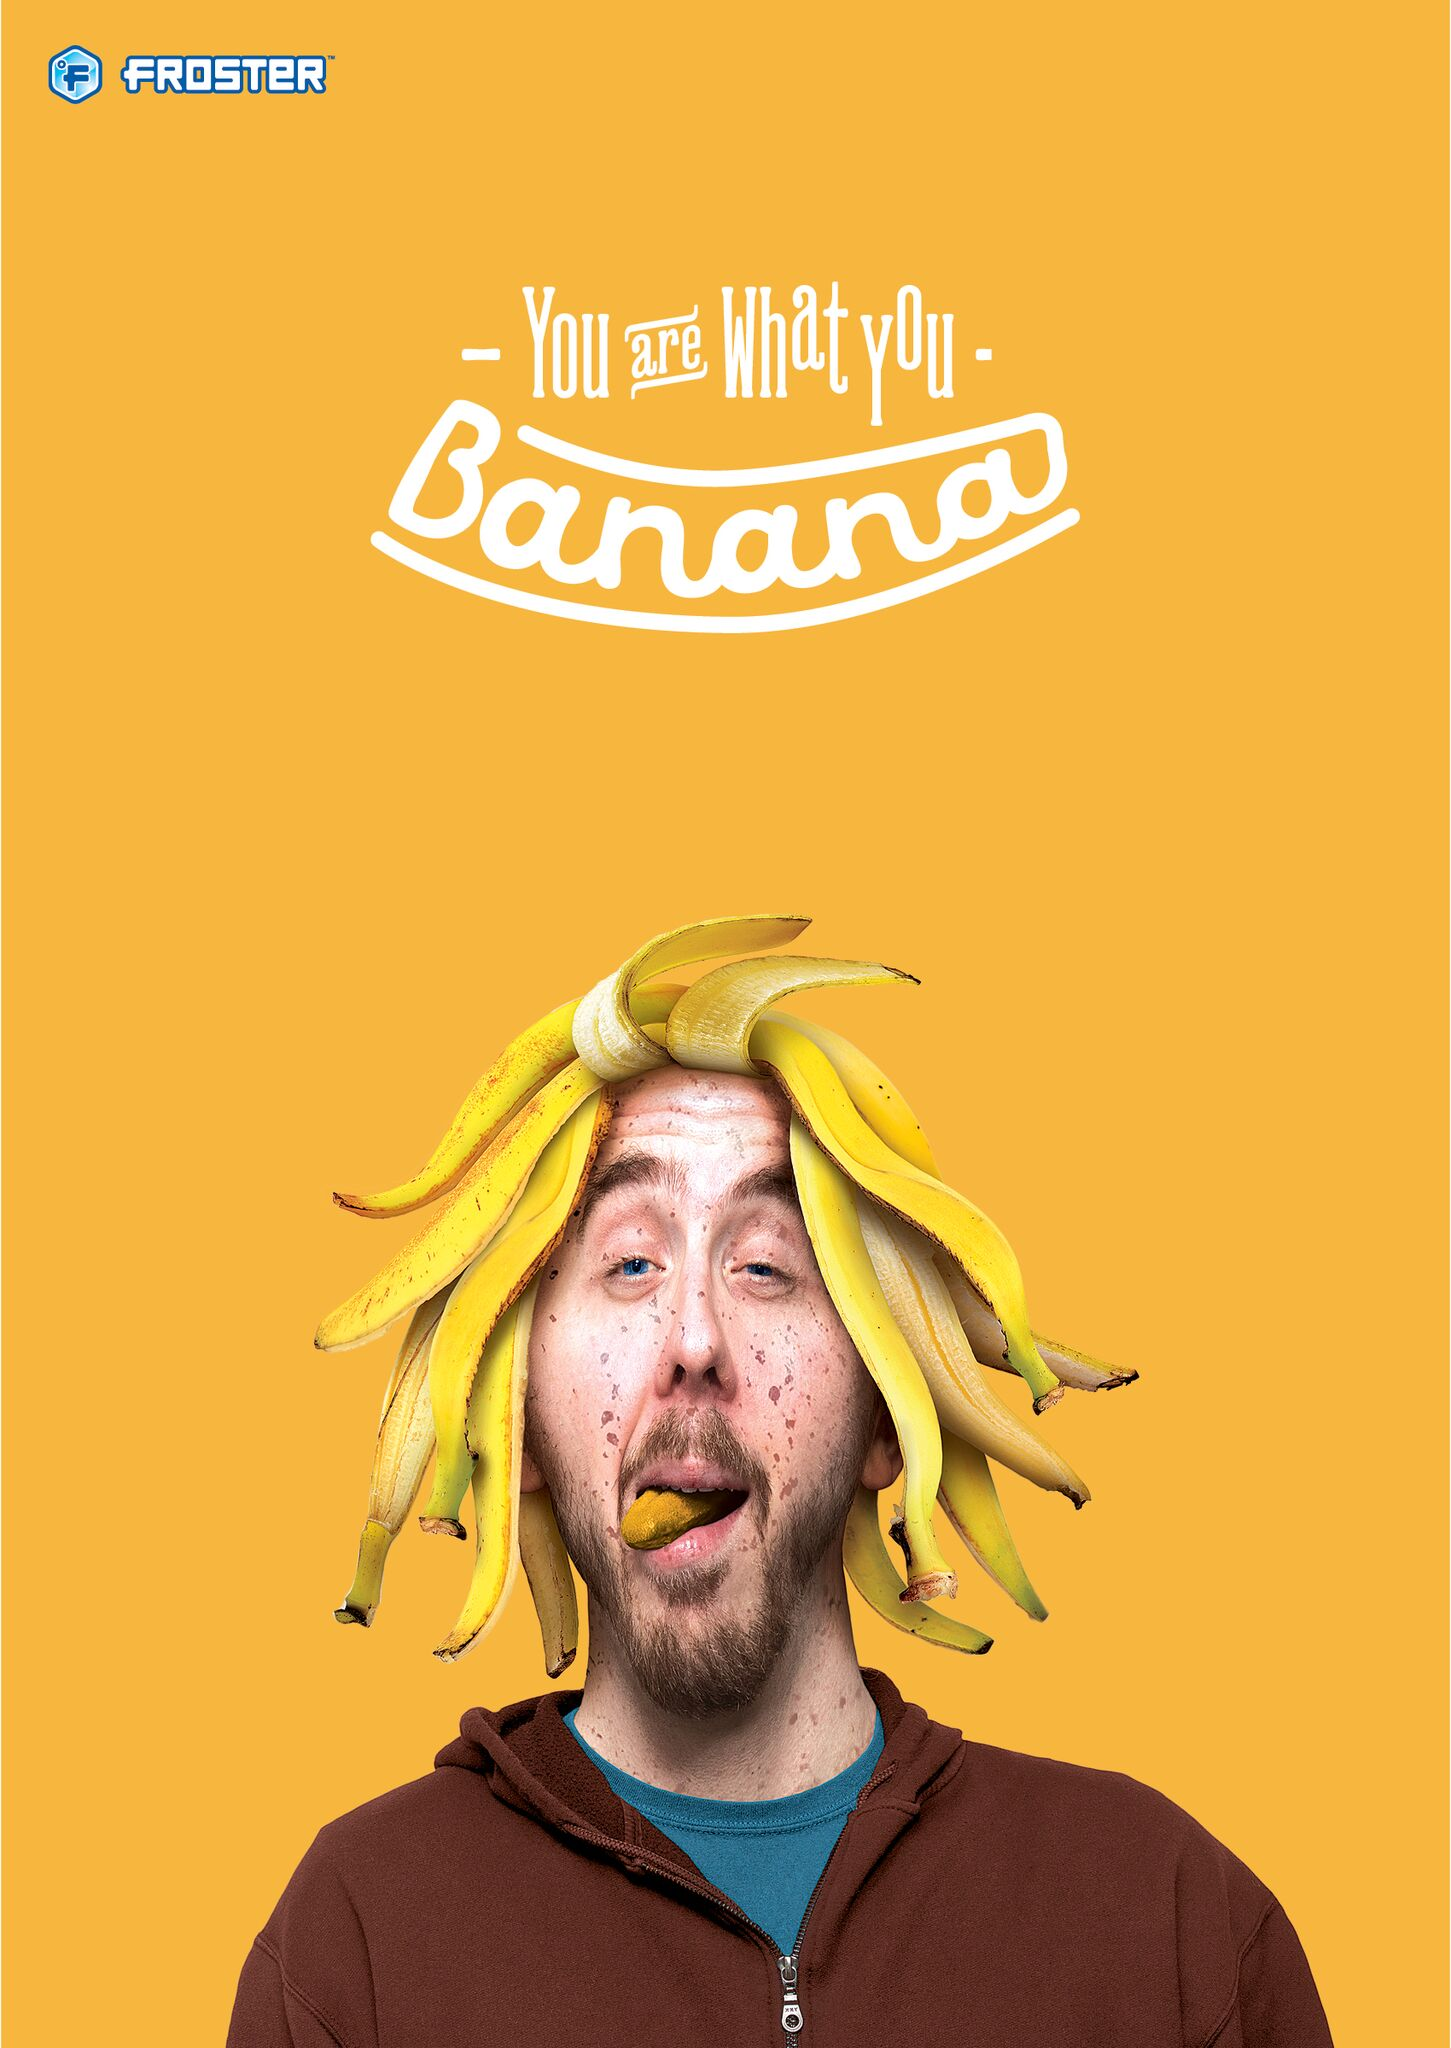 Mac's Froster - banana poster